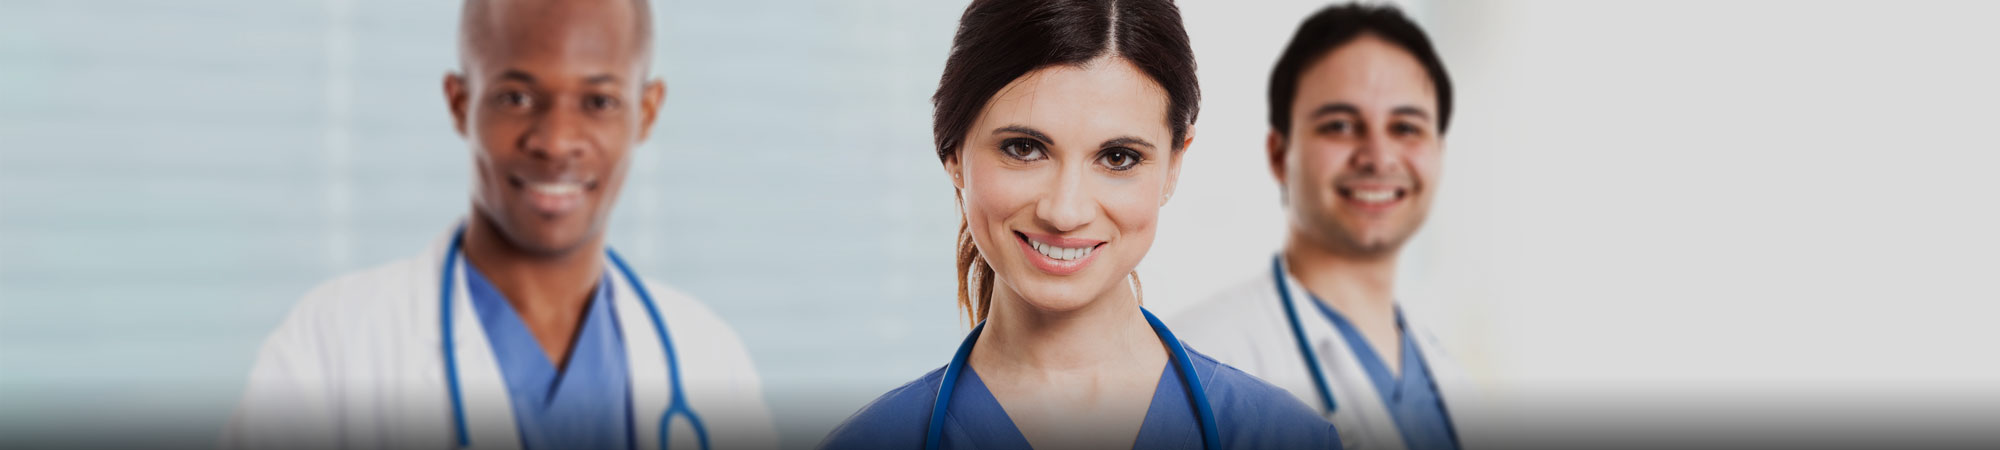 Carondelet Medical Group: Compassionate, comprehensive patient care for Greater Tucson.